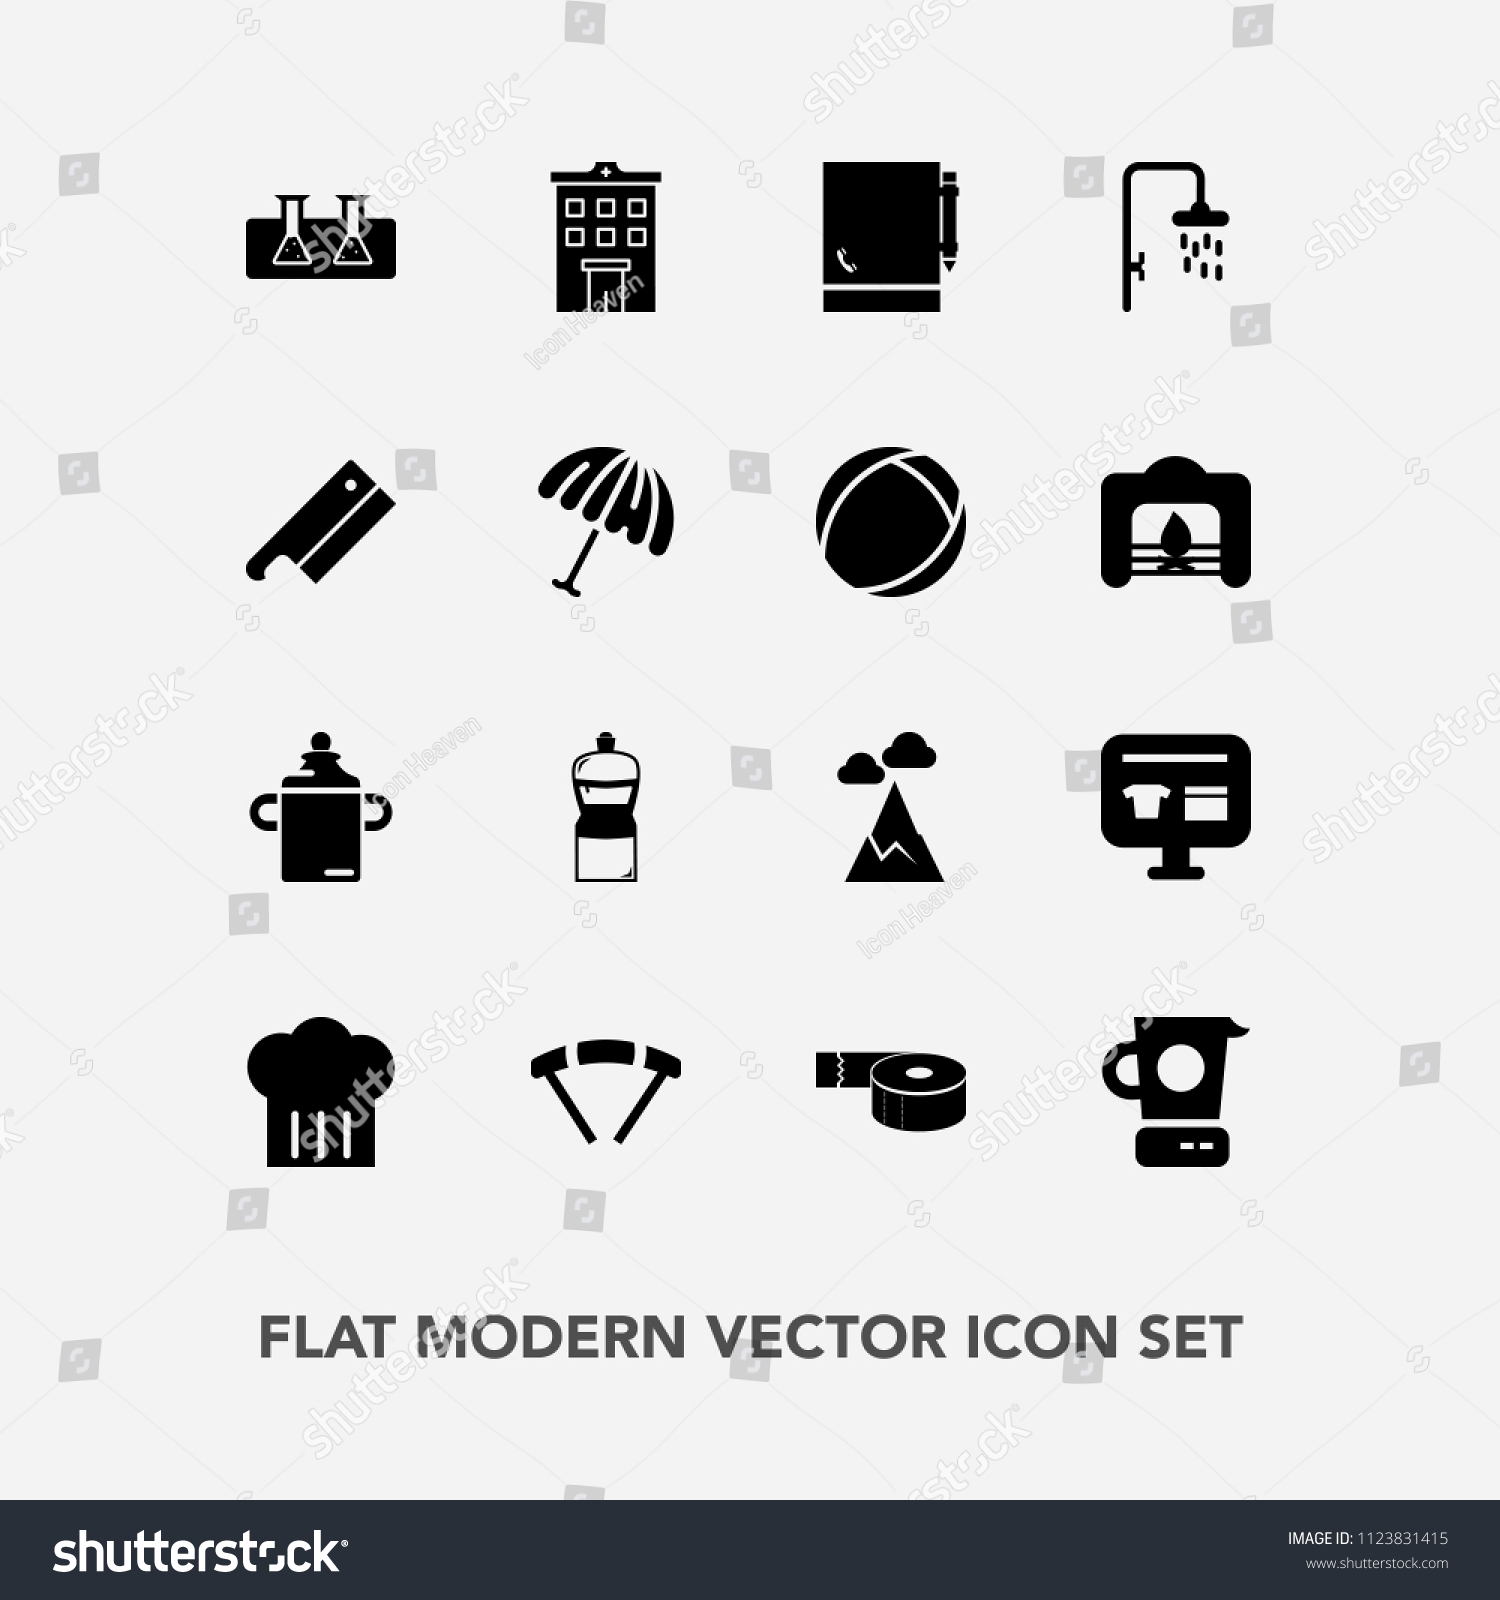 Modern Simple Vector Icon Set Estate Stock Vector 1123831415 ...